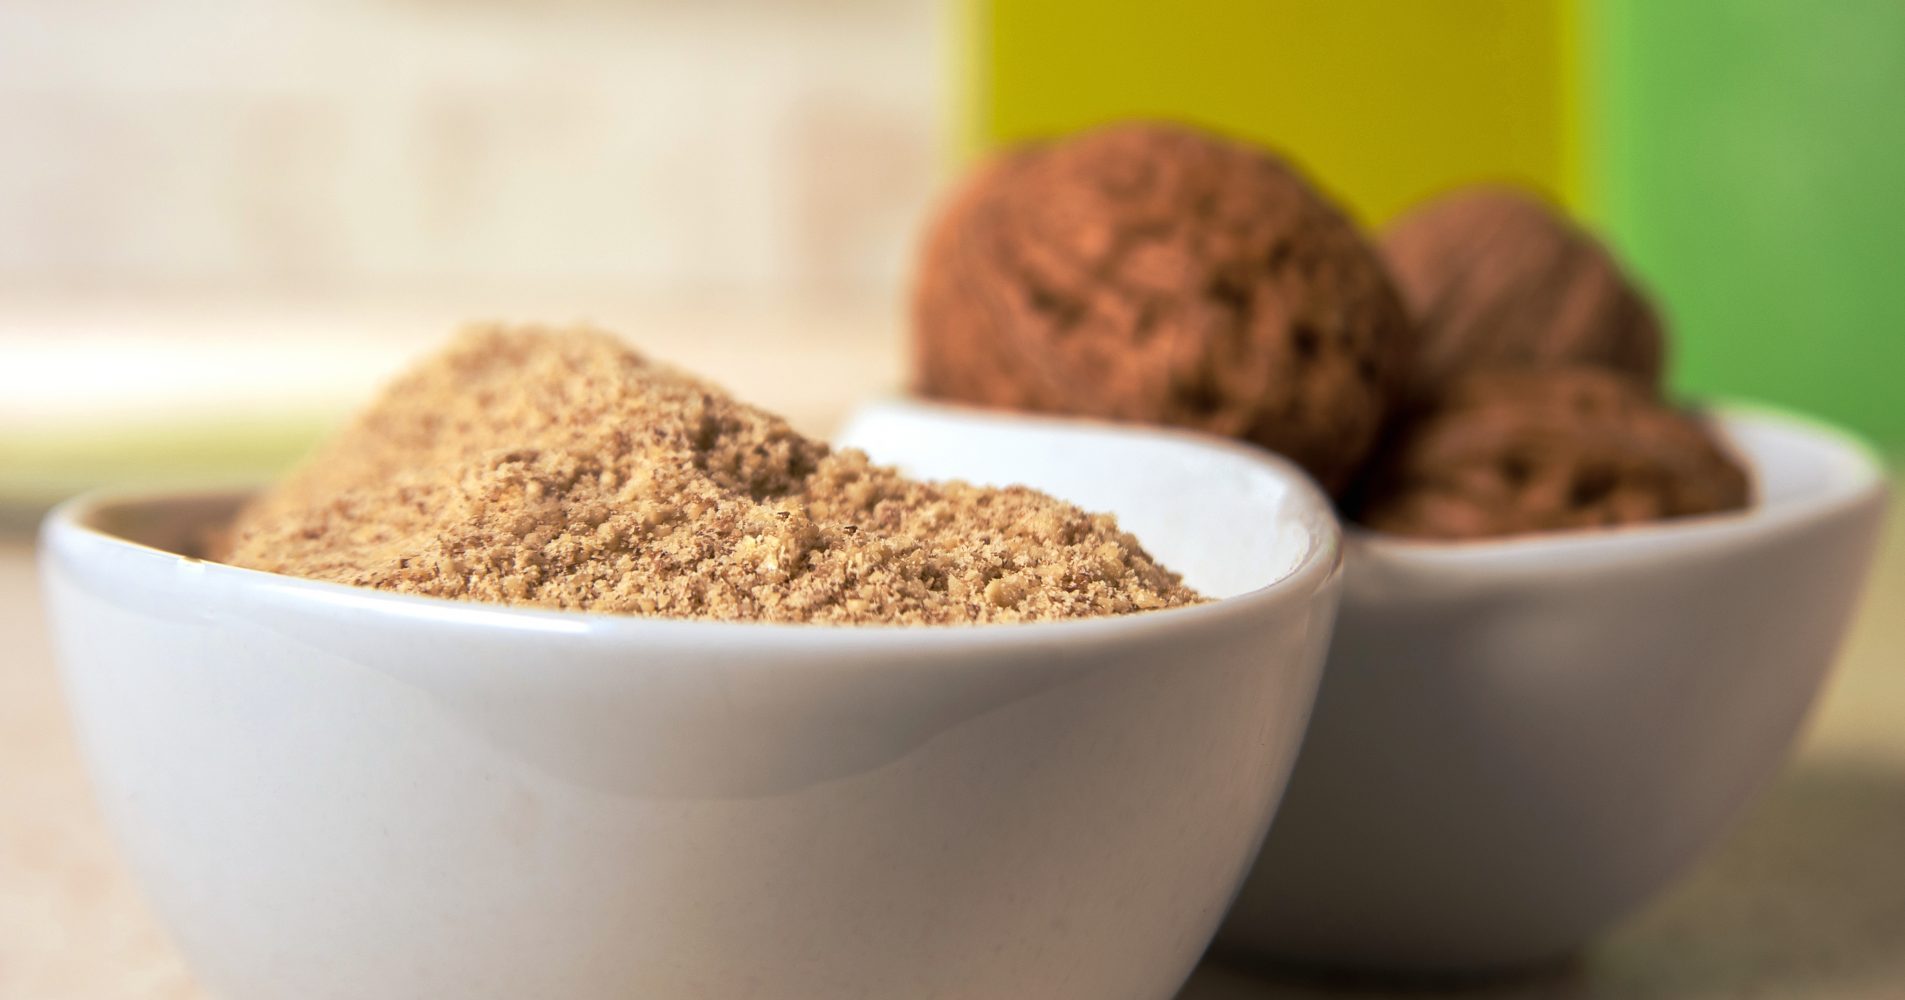 Walnut Flour Market By Types, Benefits, Demand, Uses, Consumption and Forecast till 2024